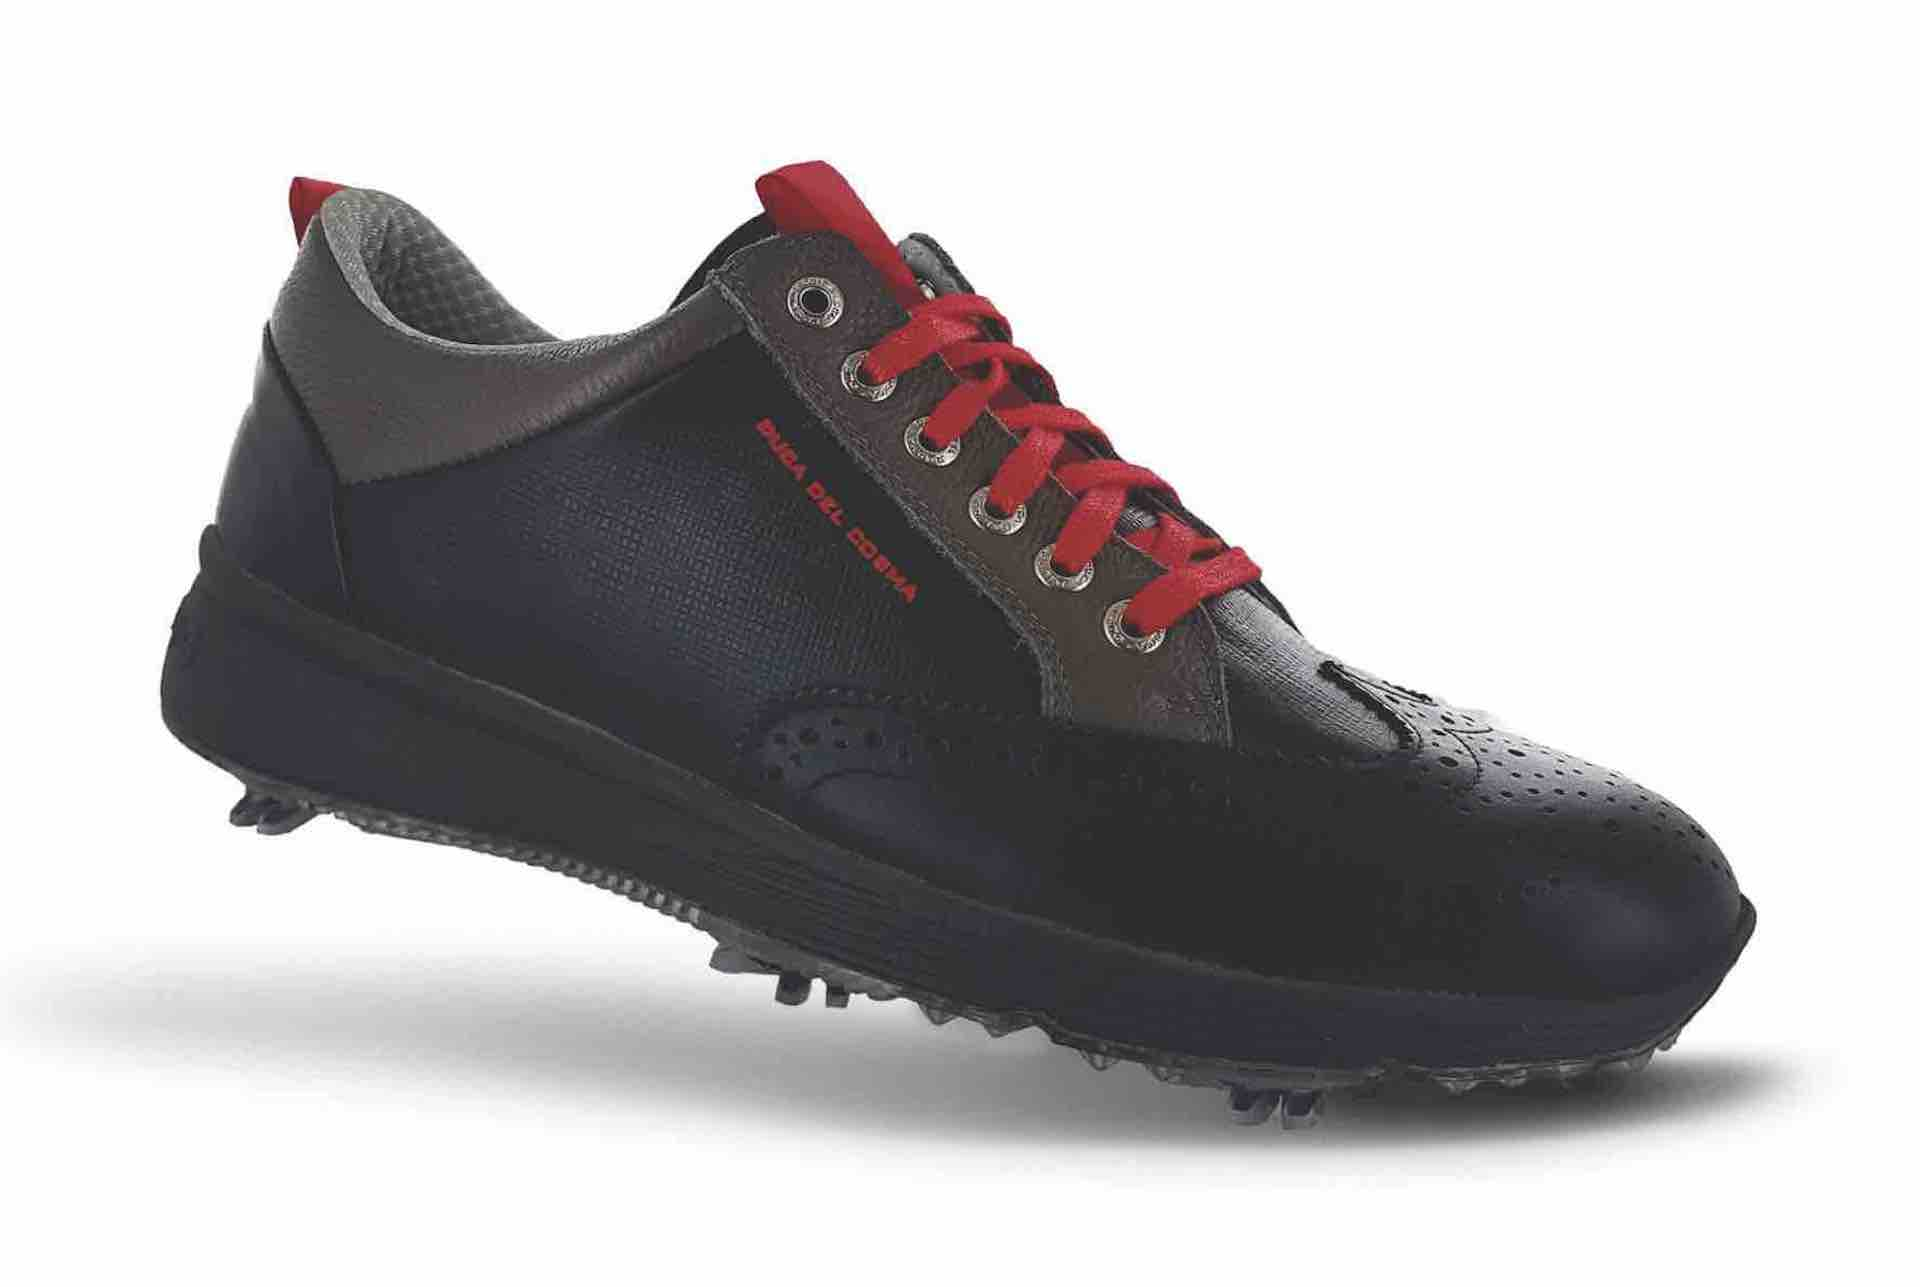 Duca Del Cosma unveils its first spiked models